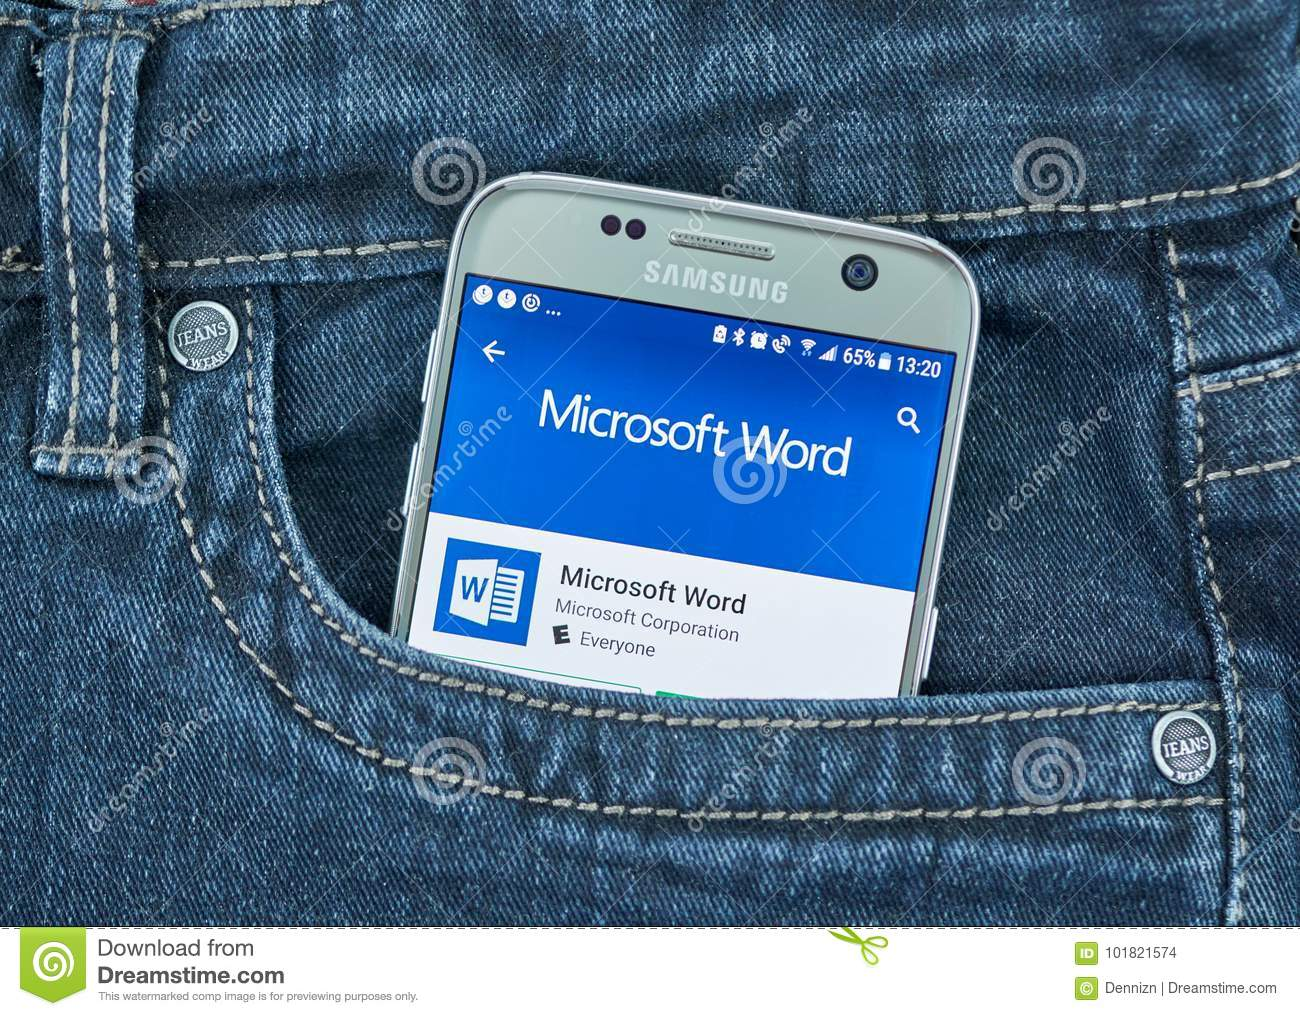 Microsoft Word Android Application Editorial Stock Image - Image of